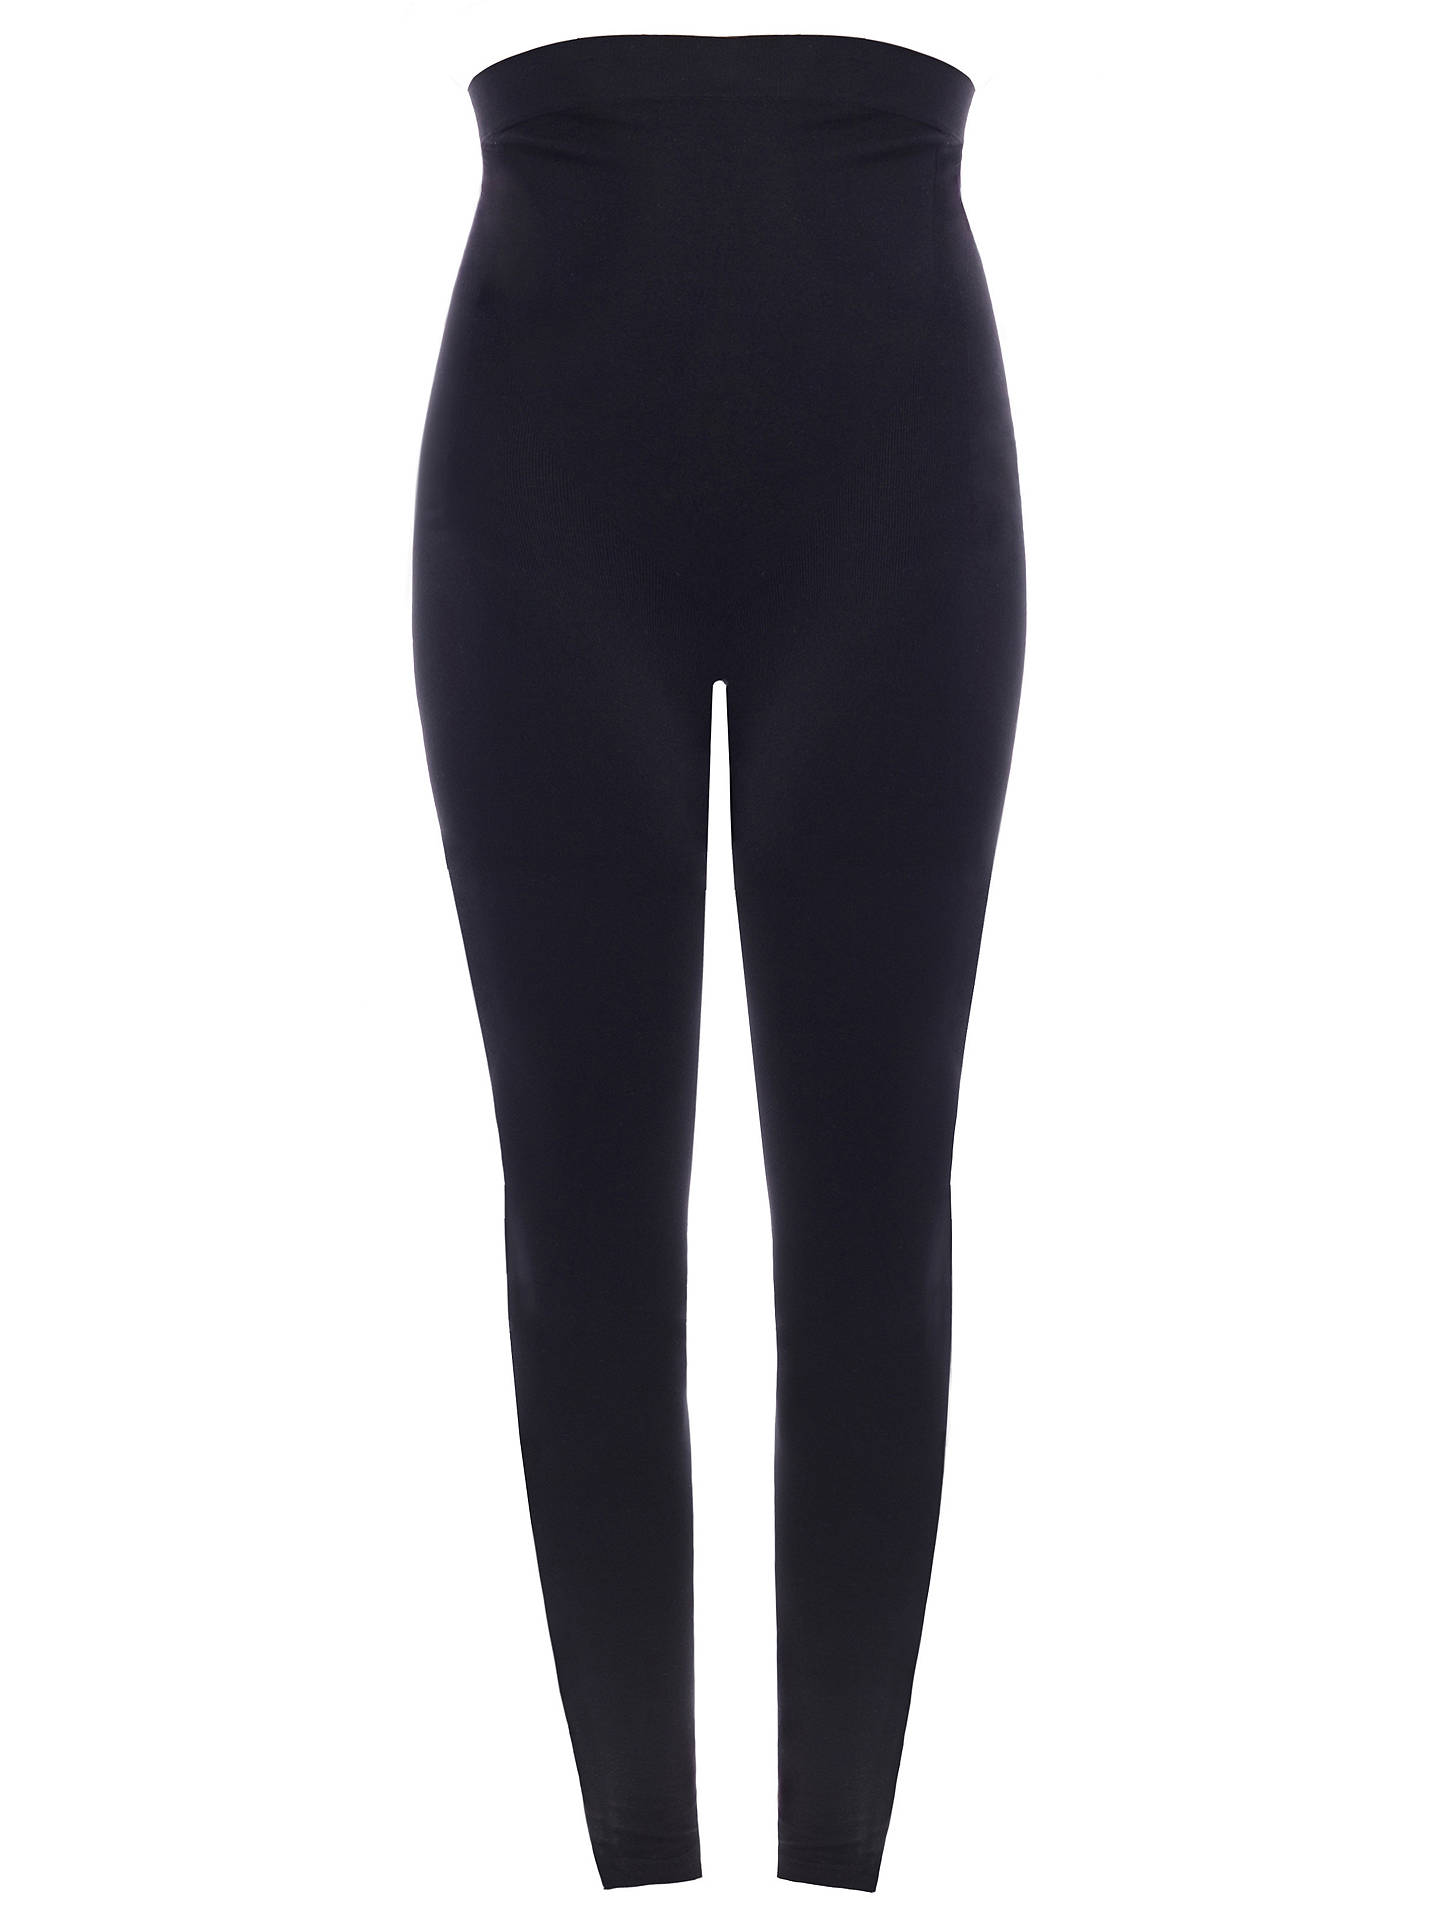 Buy Séraphine Holi Over-Bump Maternity Leggings, Black, S/M Online at johnlewis.com